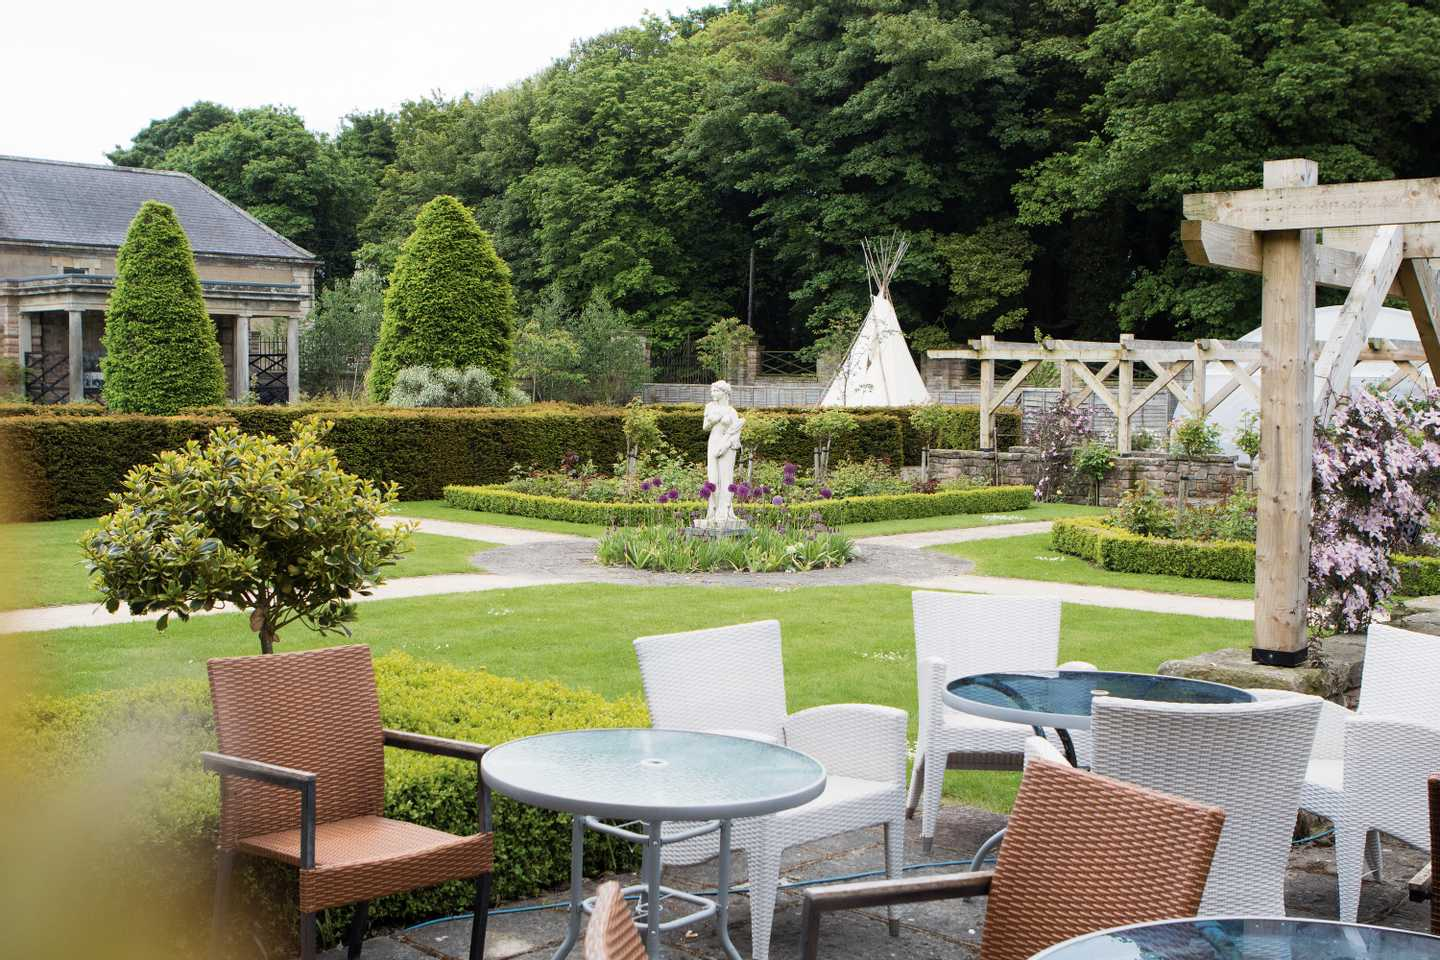 A scenic view from a patio area of our Italian gardens